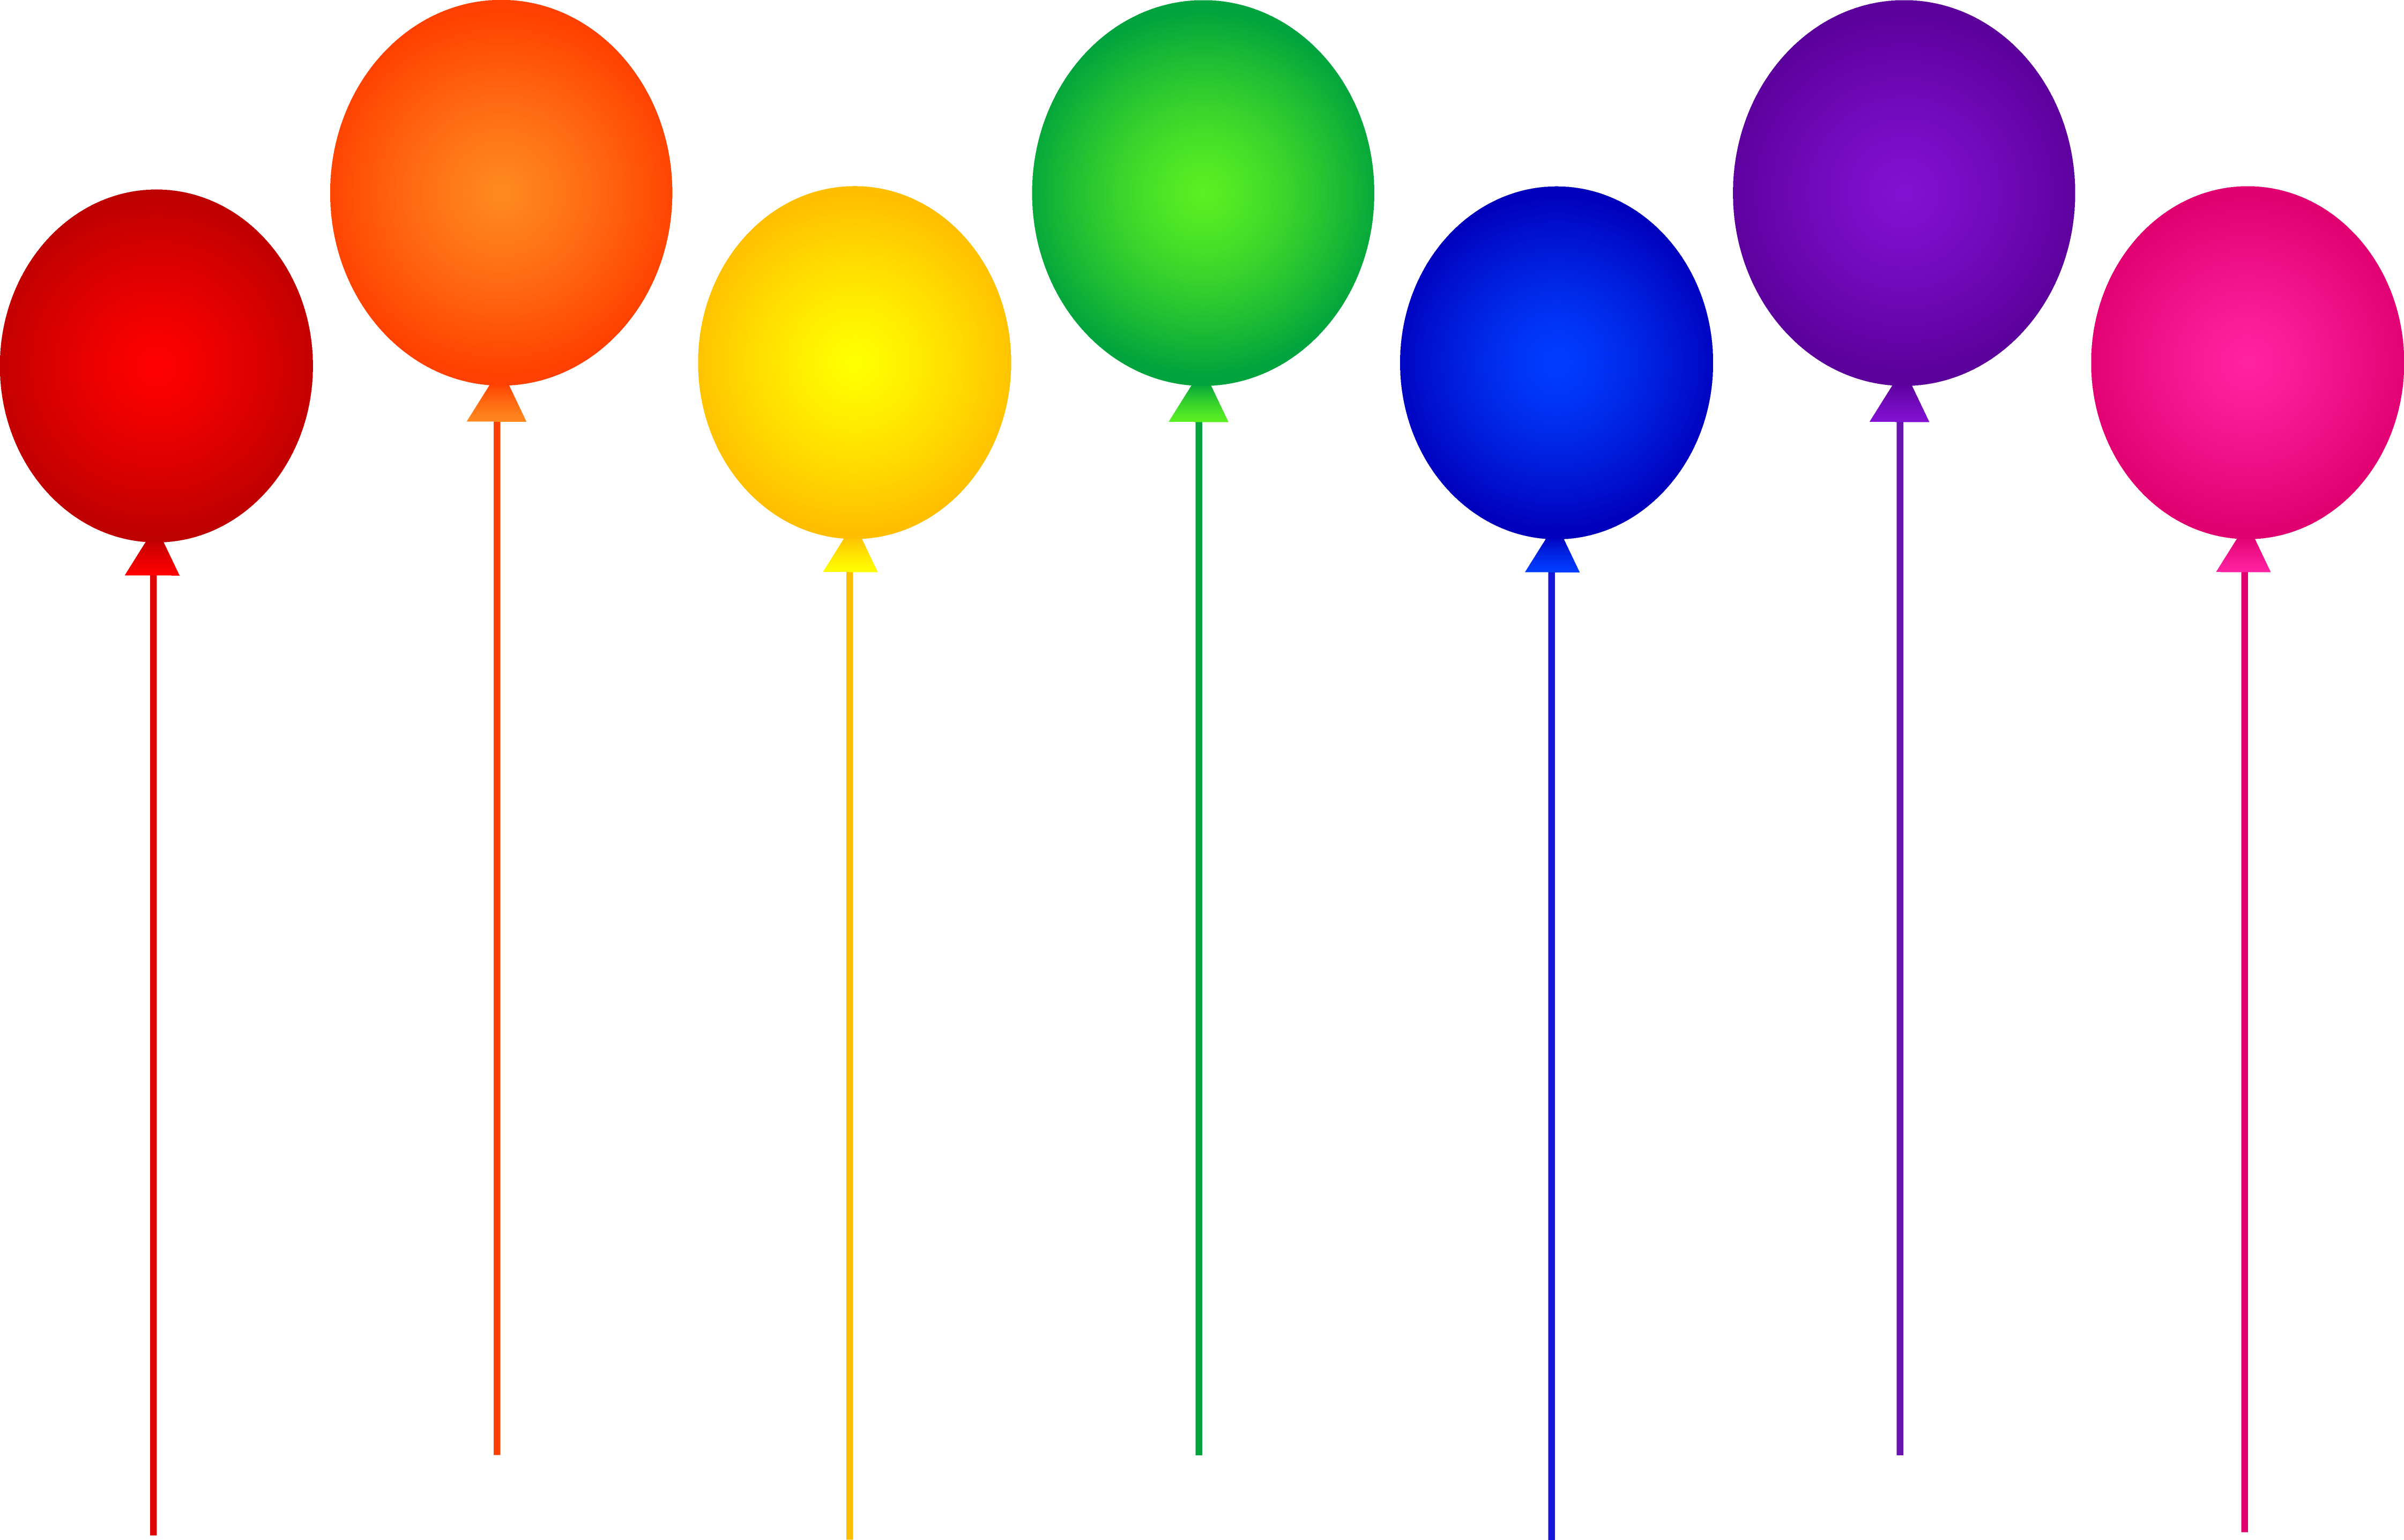 Happy Birthday Celebration Colourful Balls Clipart Free Image Download